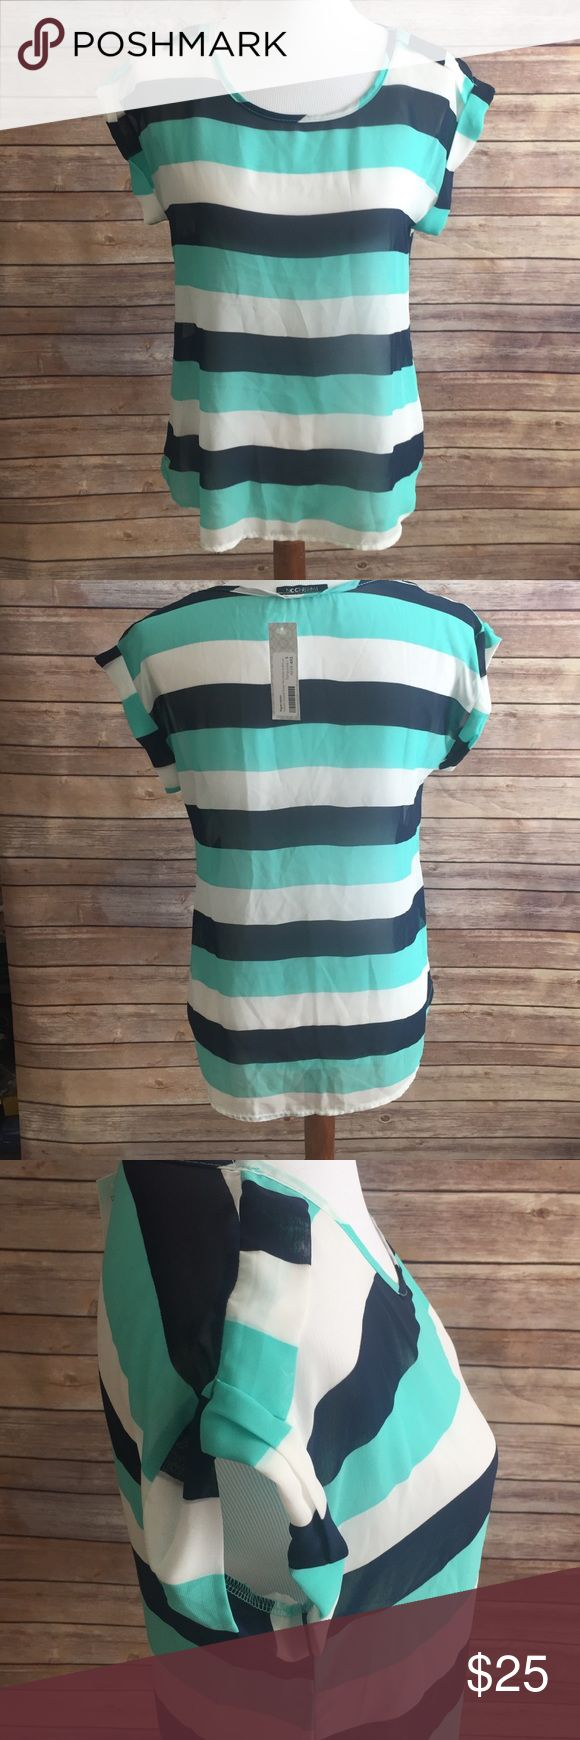 Stitchfix top with blue teal and white stripes Super cute top perfect for spring. Note that this top is sheer so it will require a Cami or will work as a beach top. Tops